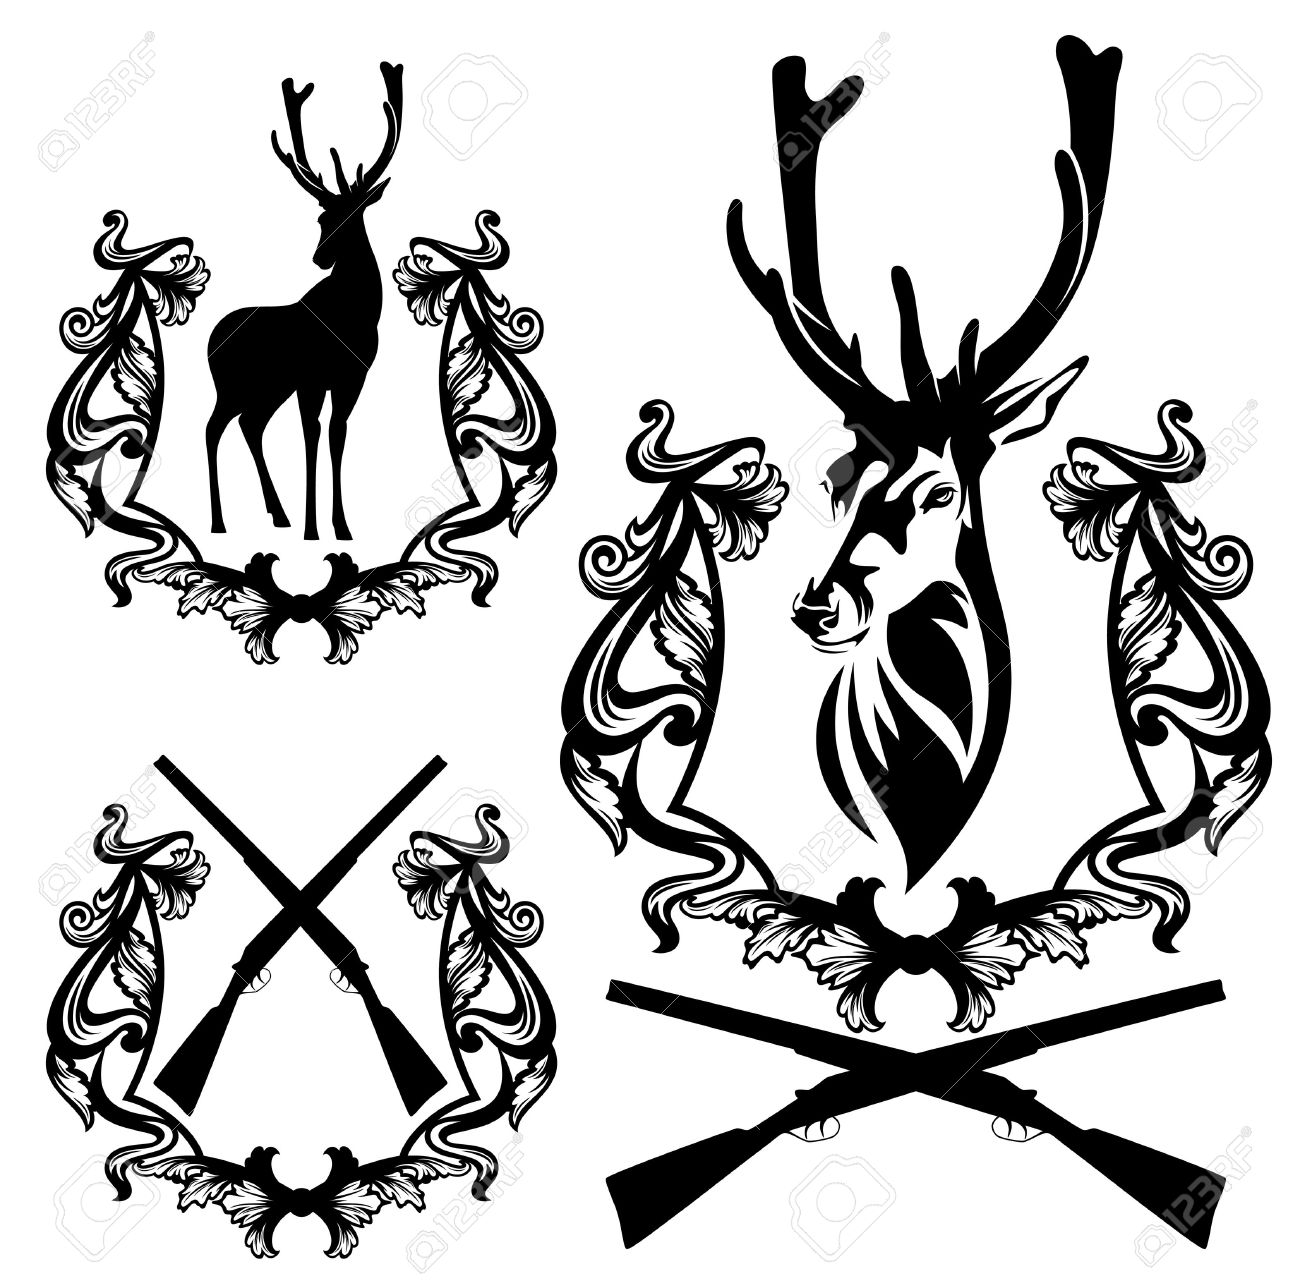 hight resolution of 1300x1288 free clipart images deer hunter in tree